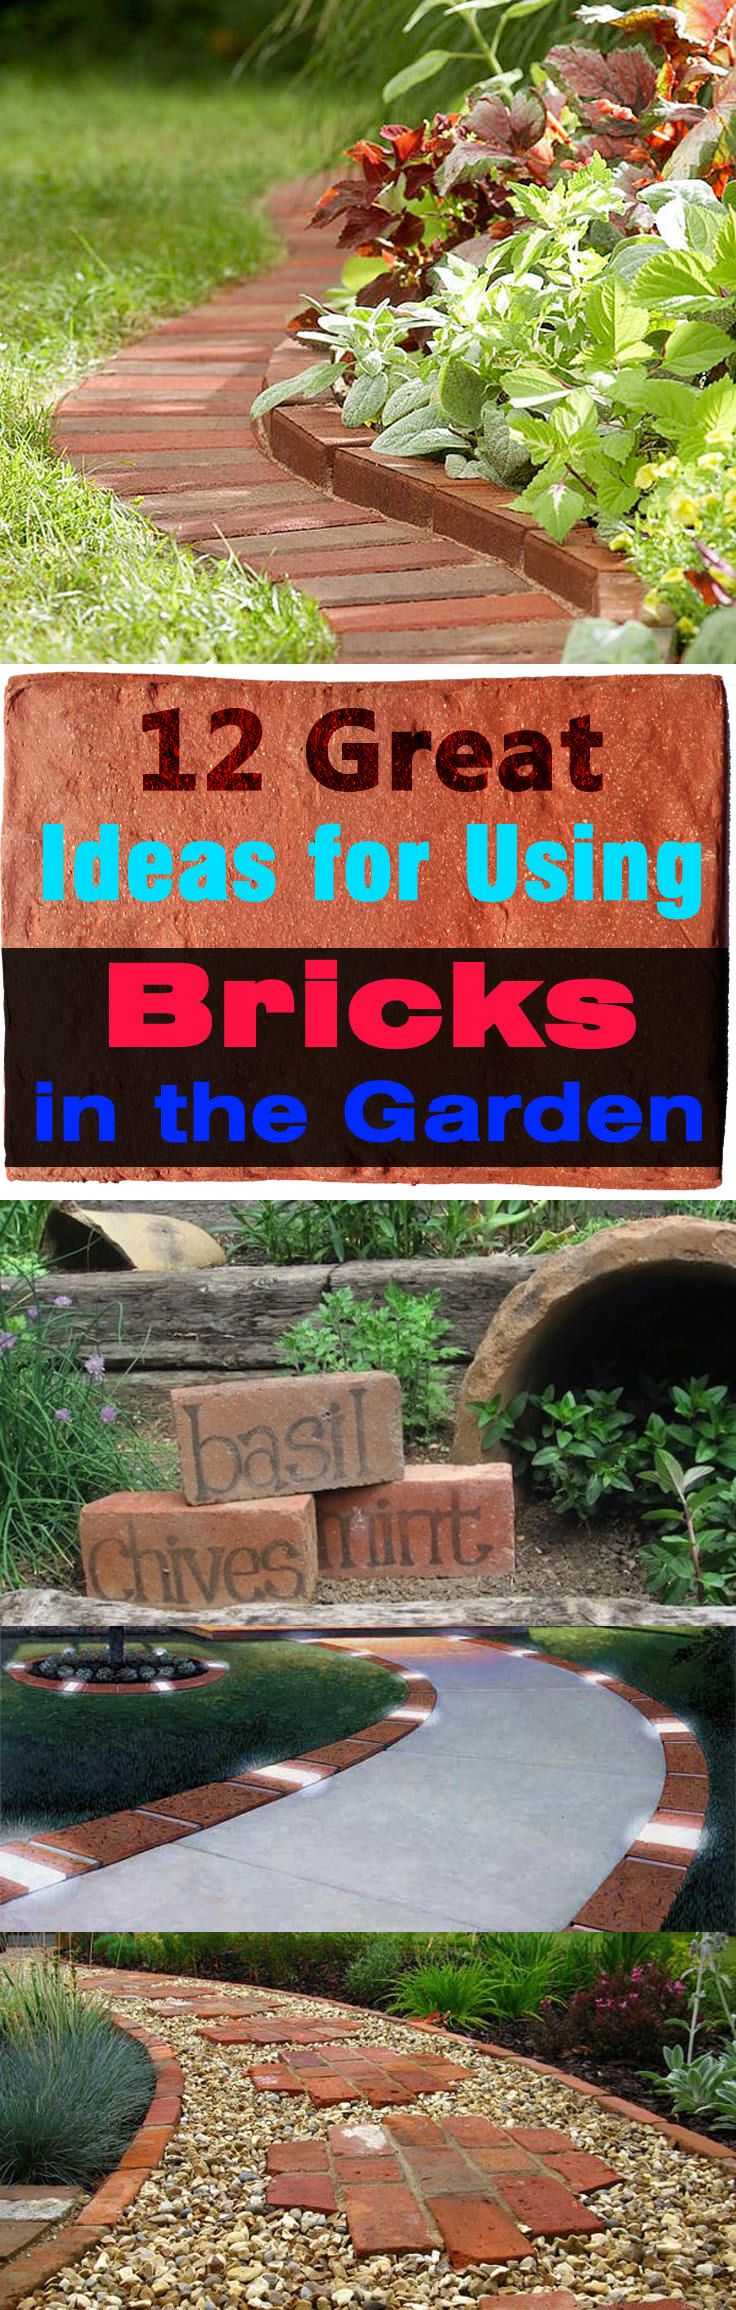 Garden Ideas 2015 231 best landscaping ideas images on pinterest | landscaping ideas